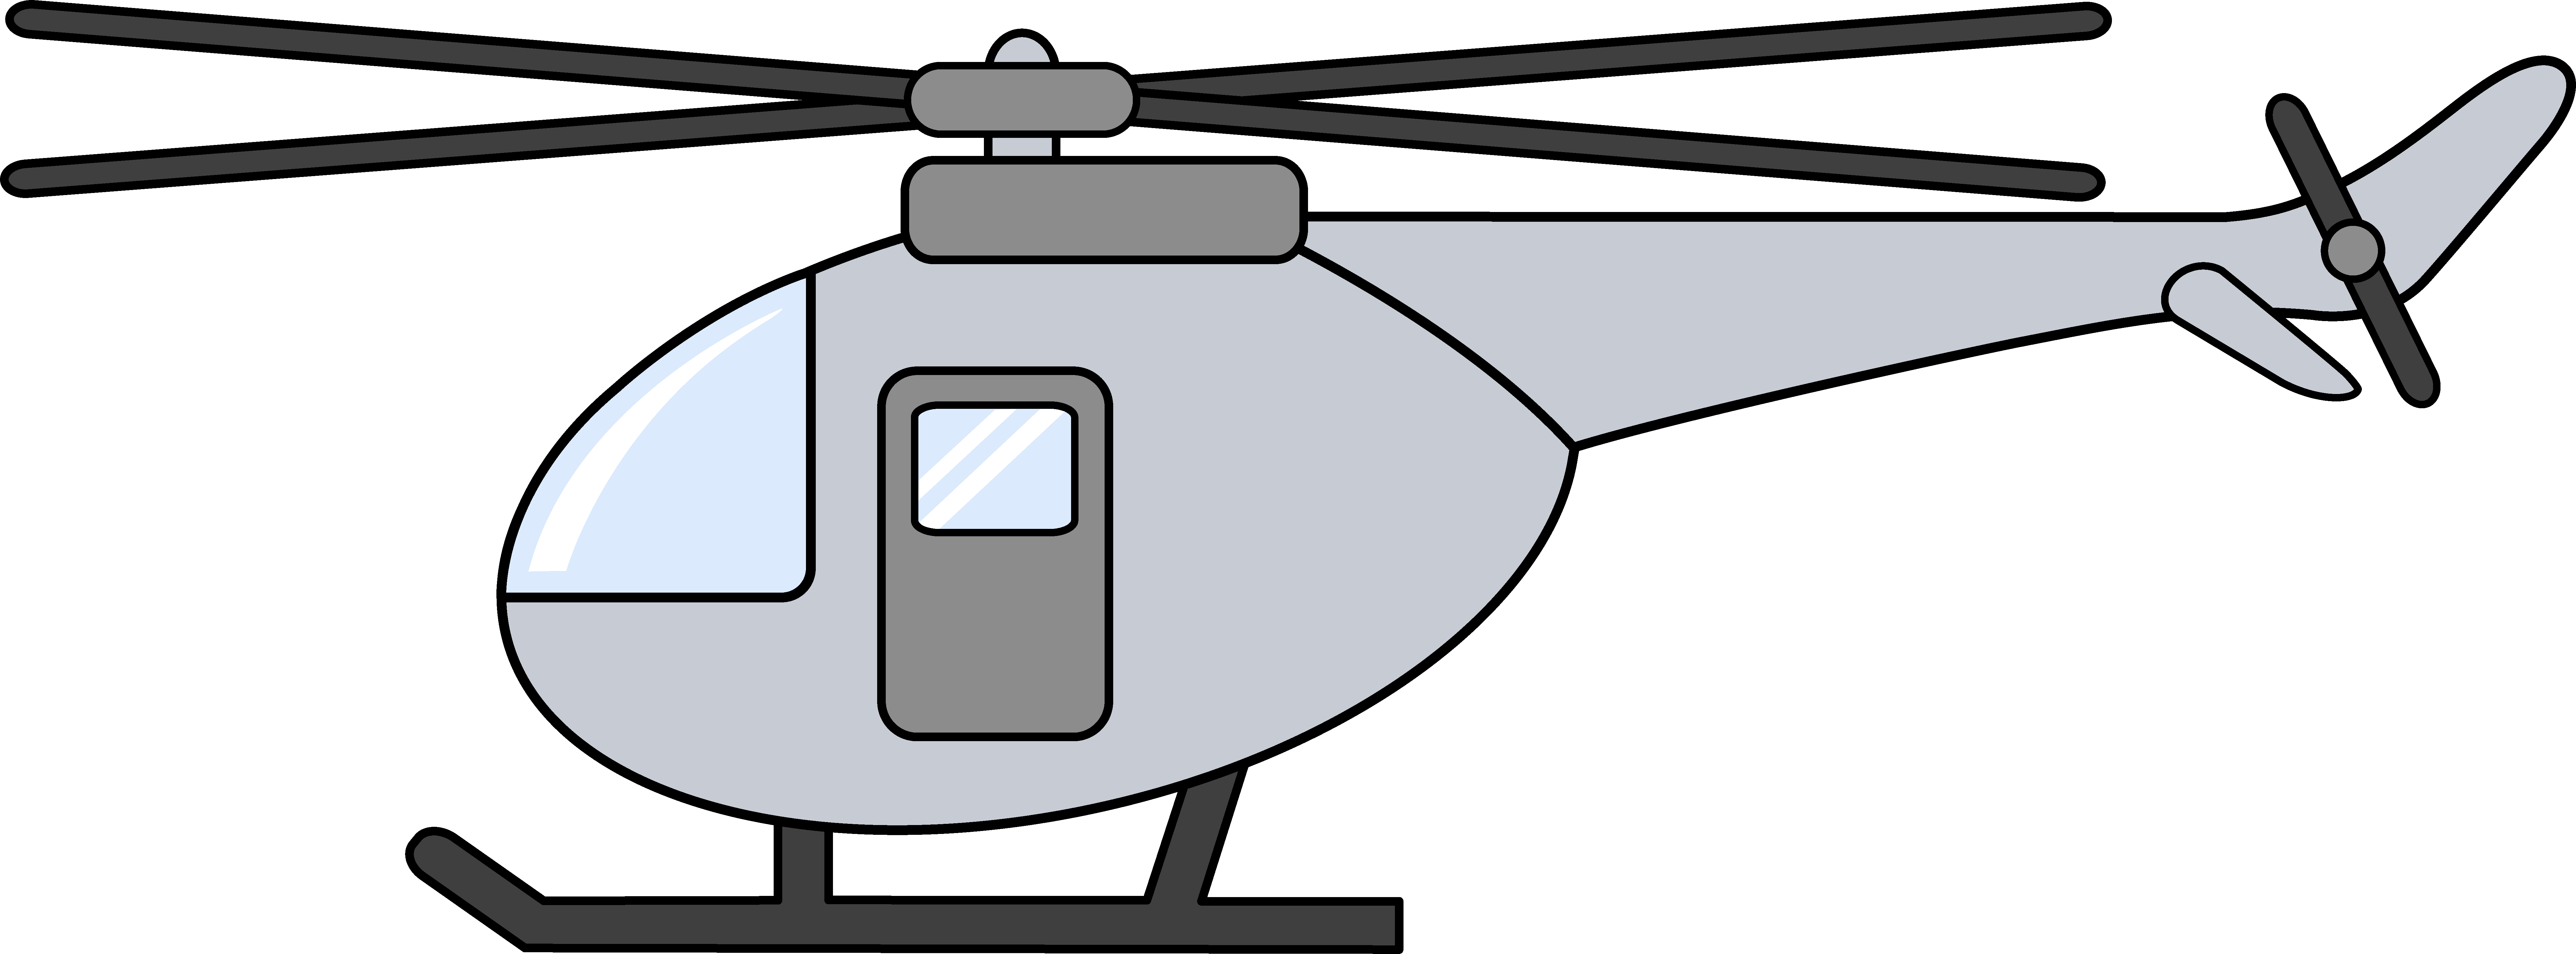 Helicopter clipart Images Helicopter Helicopter Clipart clipart